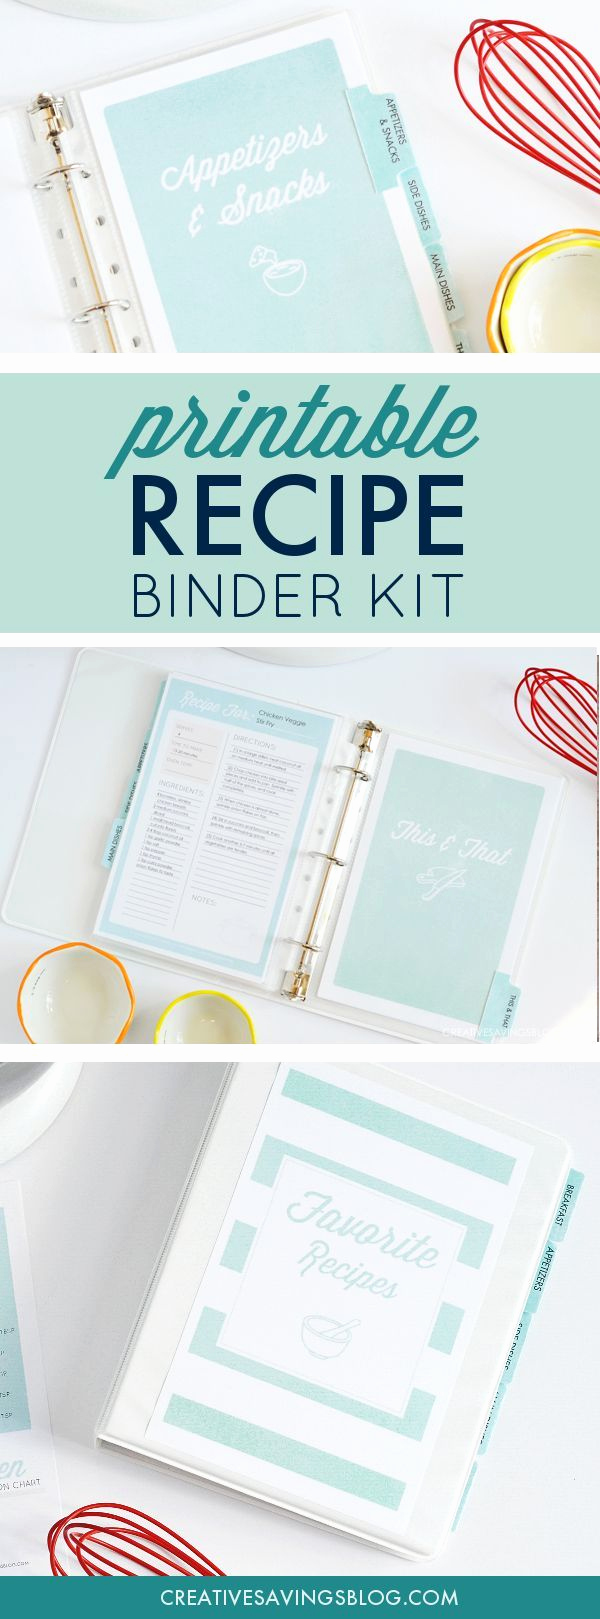 Make Your Own Cookbook Template Inspirational 25 Unique Cookbook Template Ideas On Pinterest